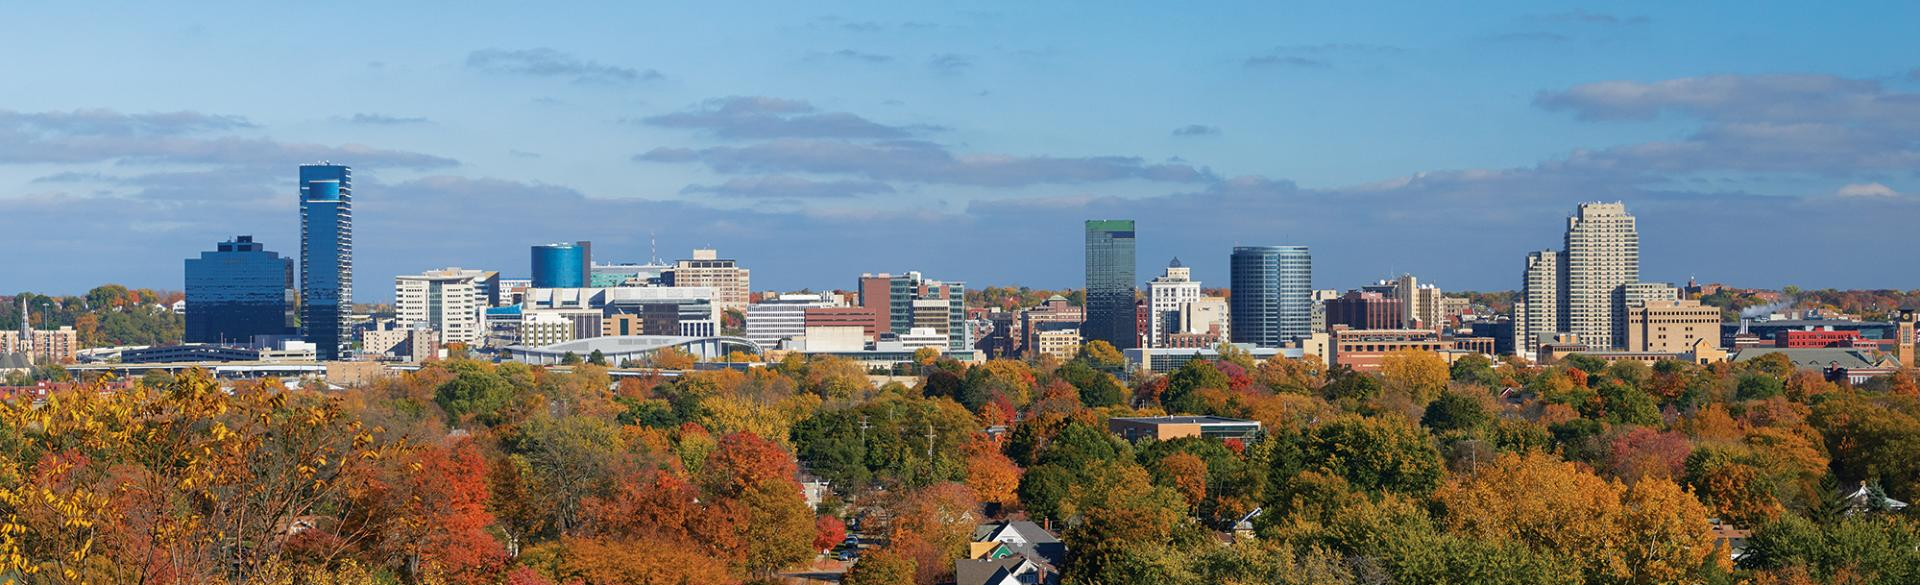 Trees turning fall colors with the Grand Rapids skyline in the background